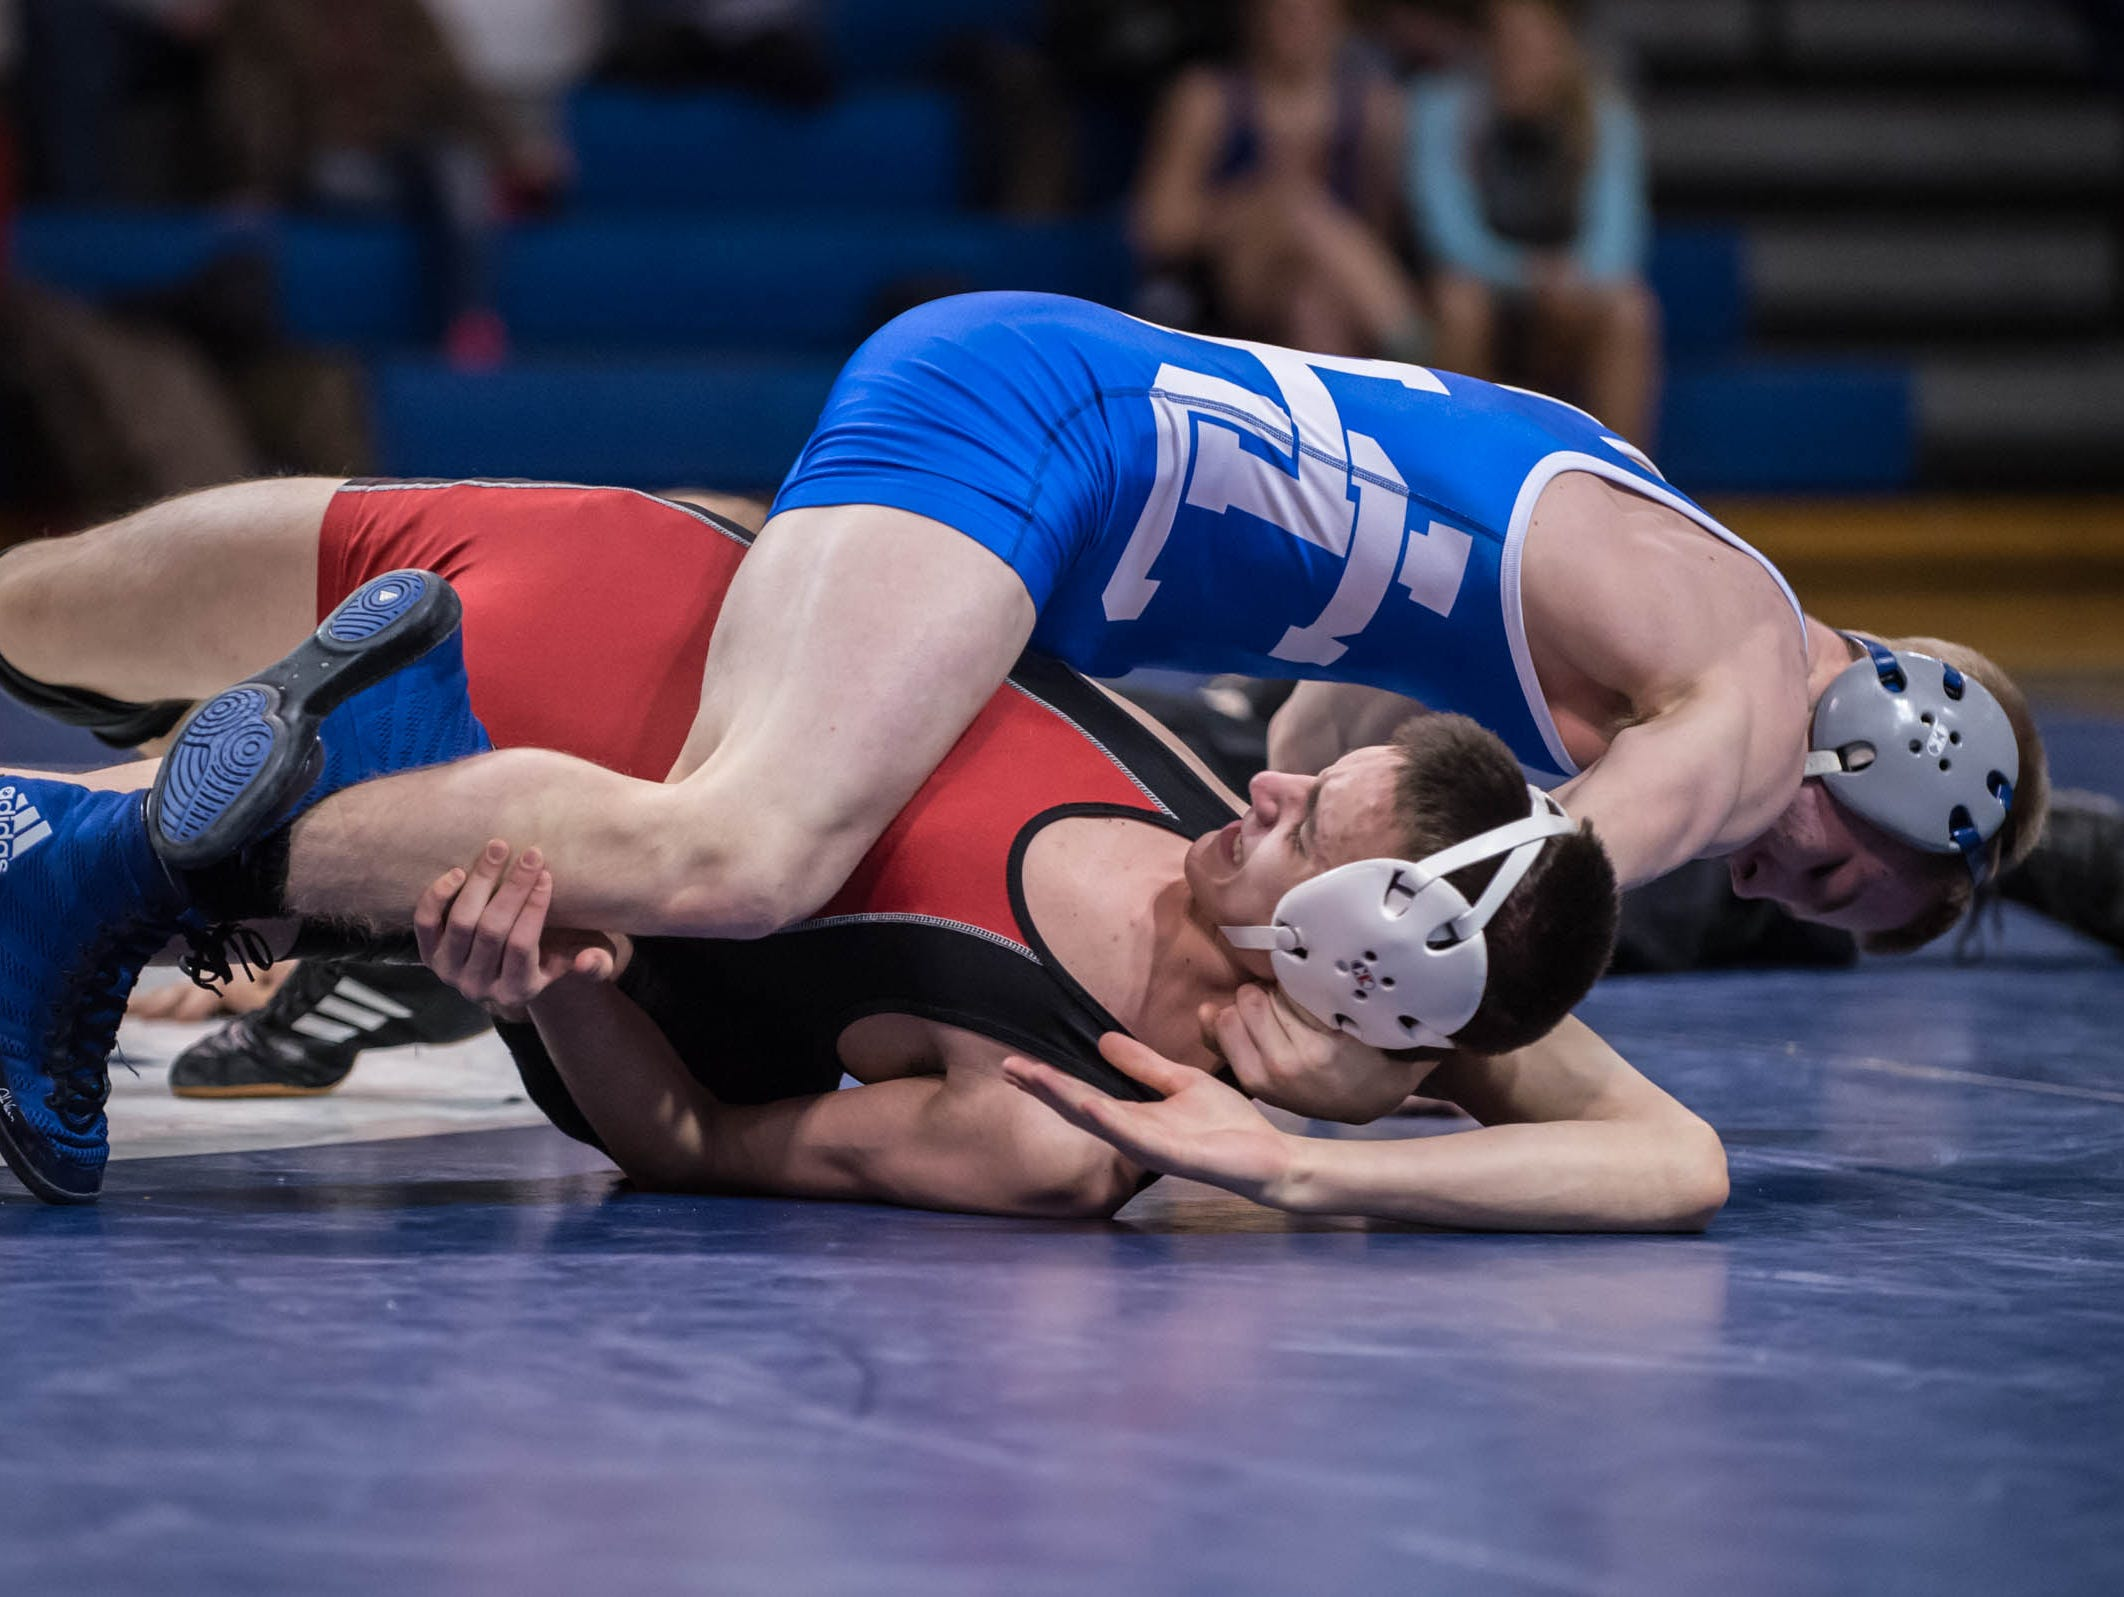 Harper Creek's Ethan Bishop (top) wrestles Marshall's Willie Couch in 125 pound weight class during Wednesday's district match.